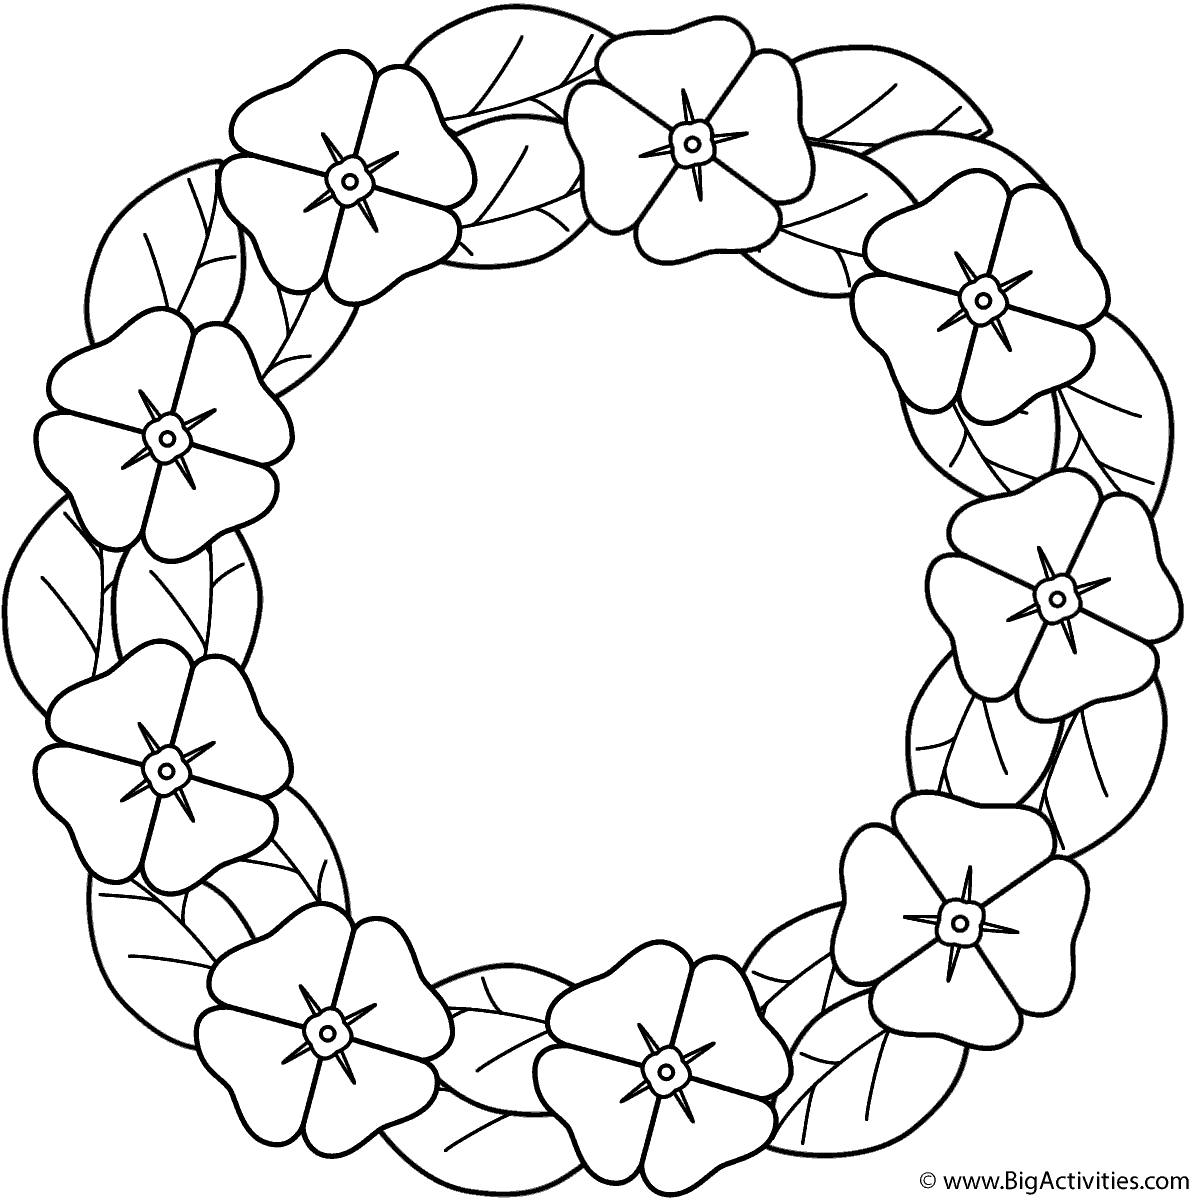 Poppy wreath Coloring Page (Anzac Day)